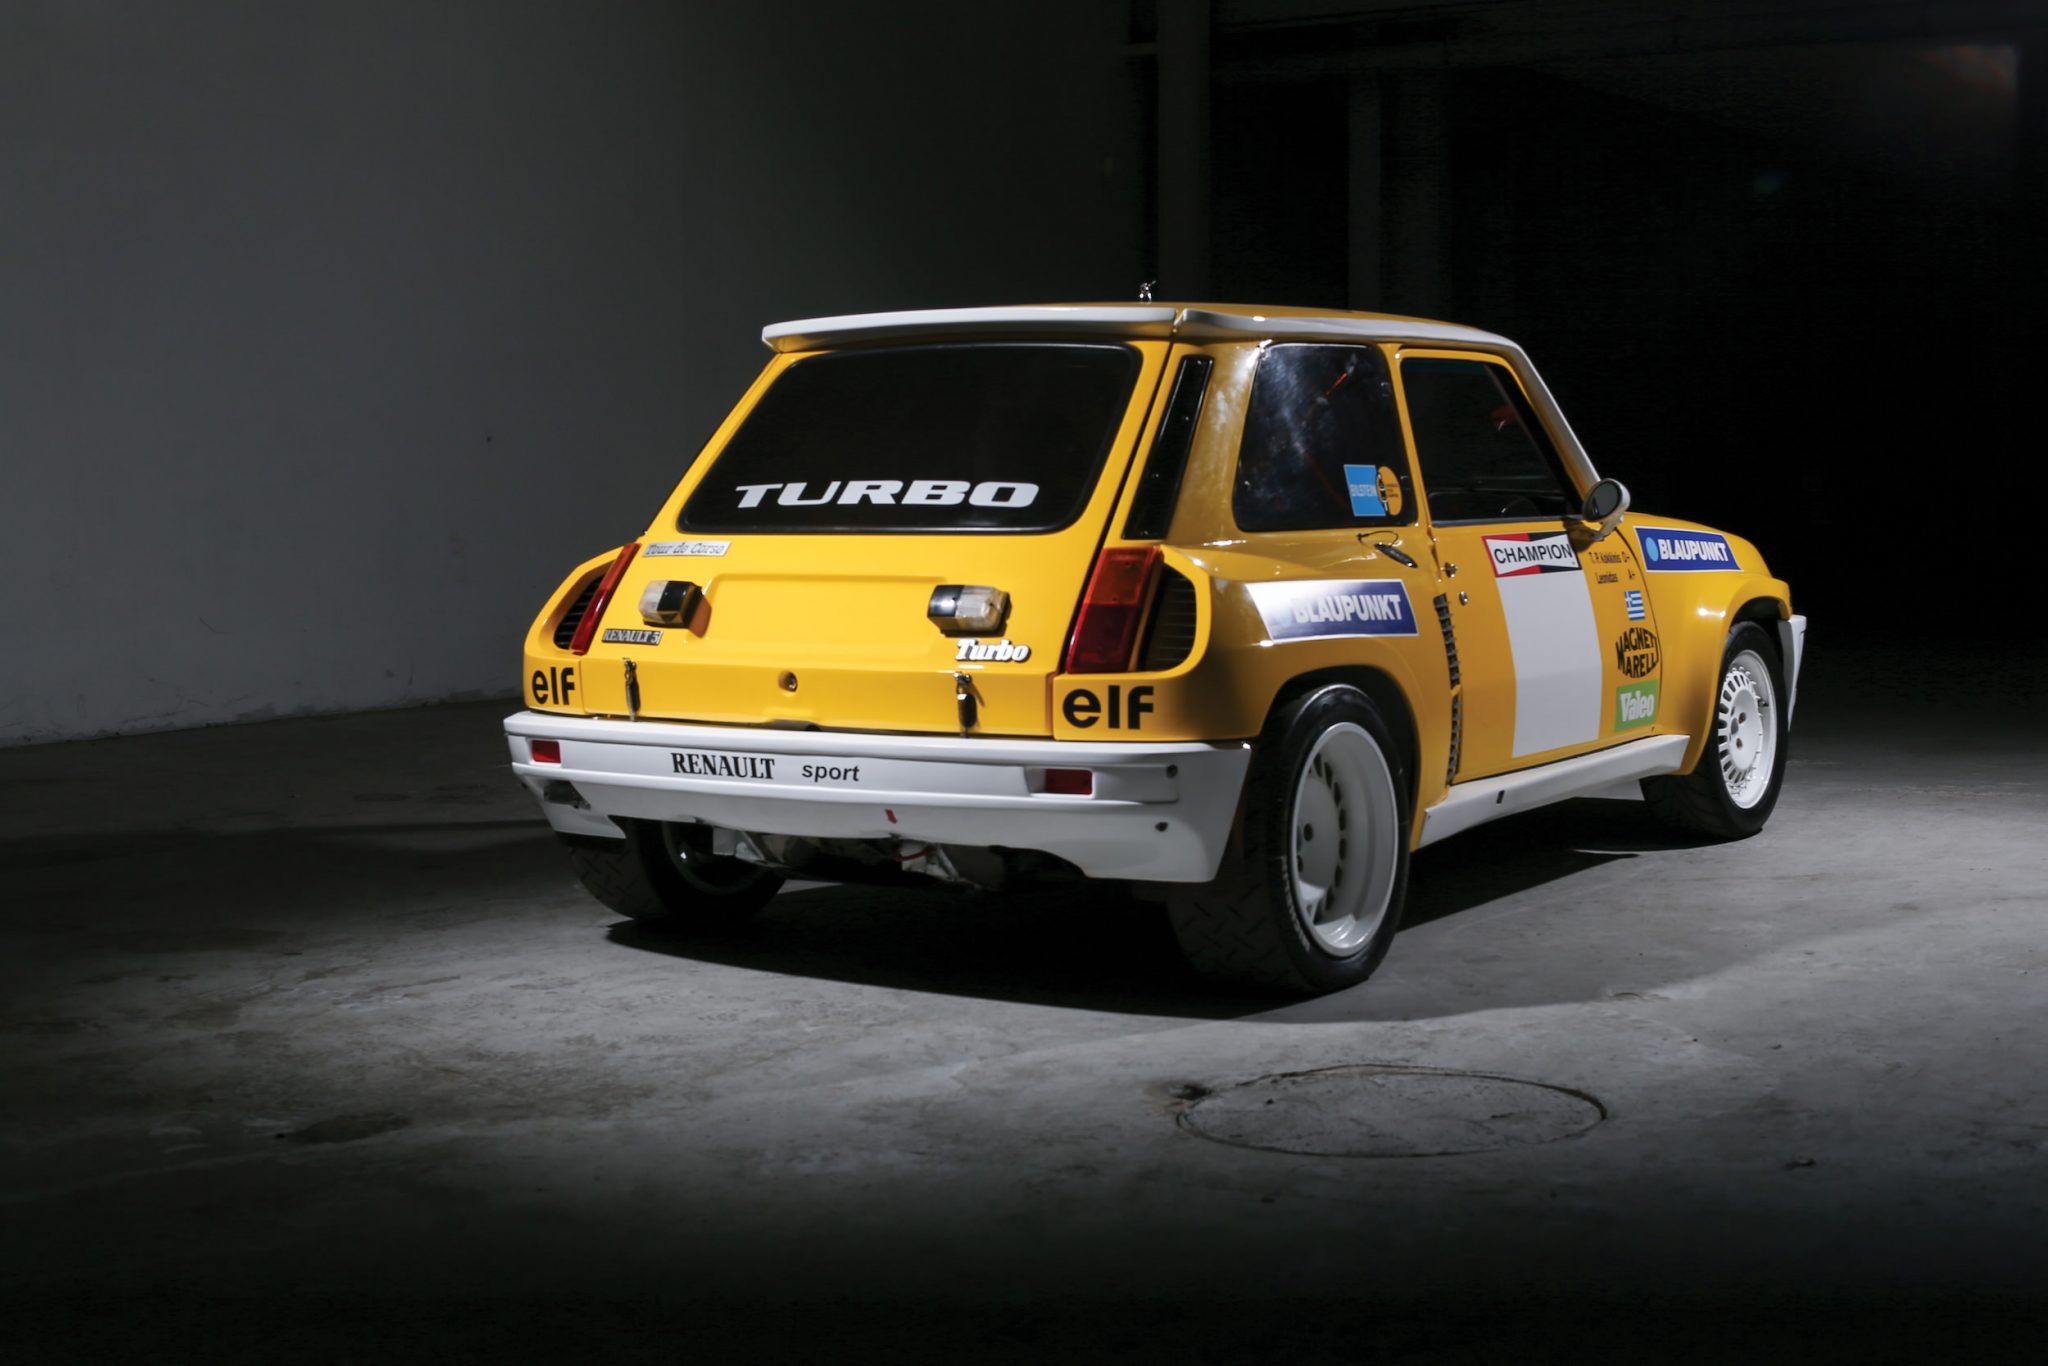 Manolopoulos 2010 Renault 5 Turbo: 1980 Renault 5 Turbo